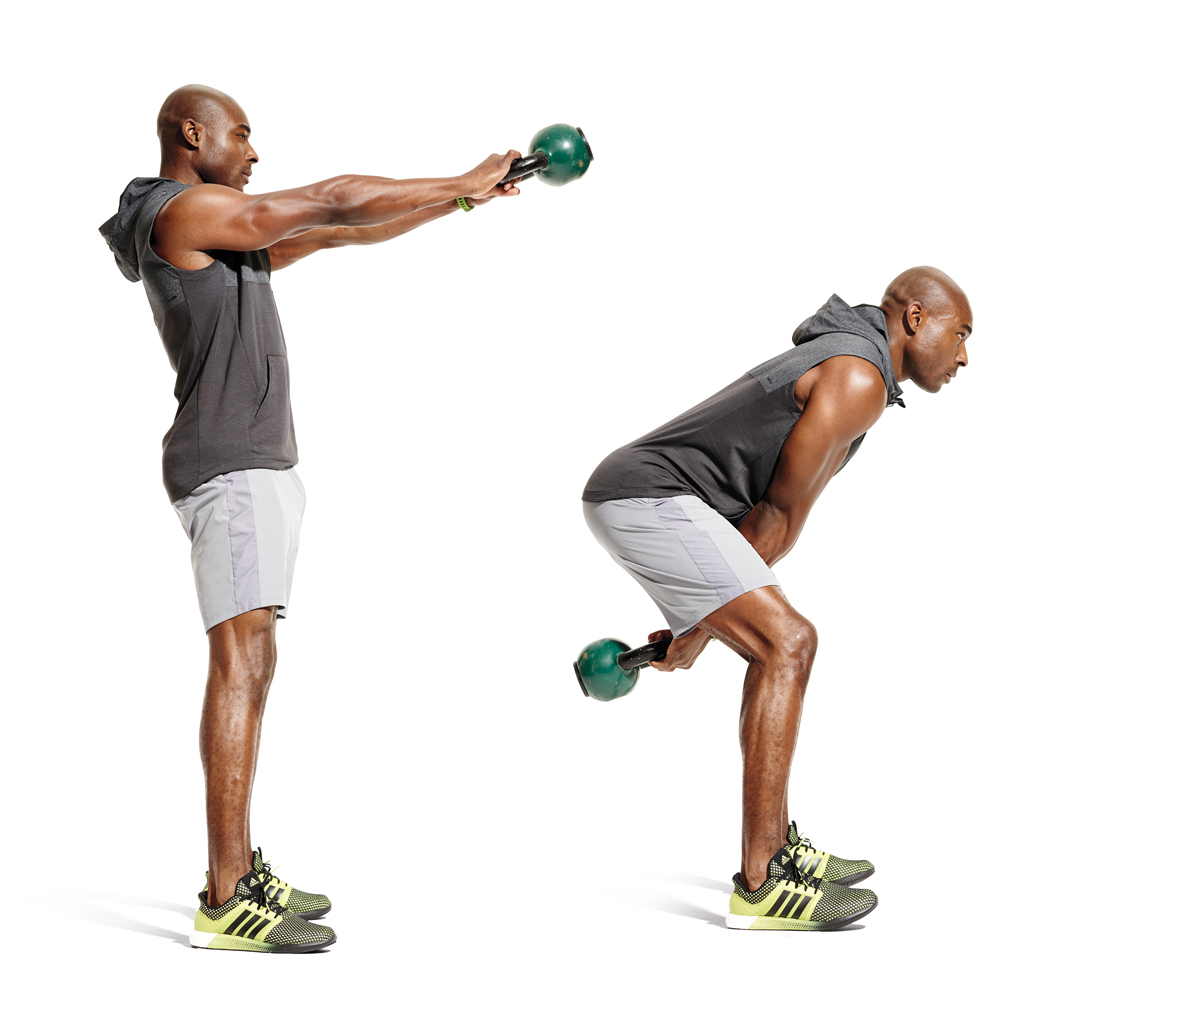 Soccer Strength: 9 Exercises That Will Help You Add Power to Your Game